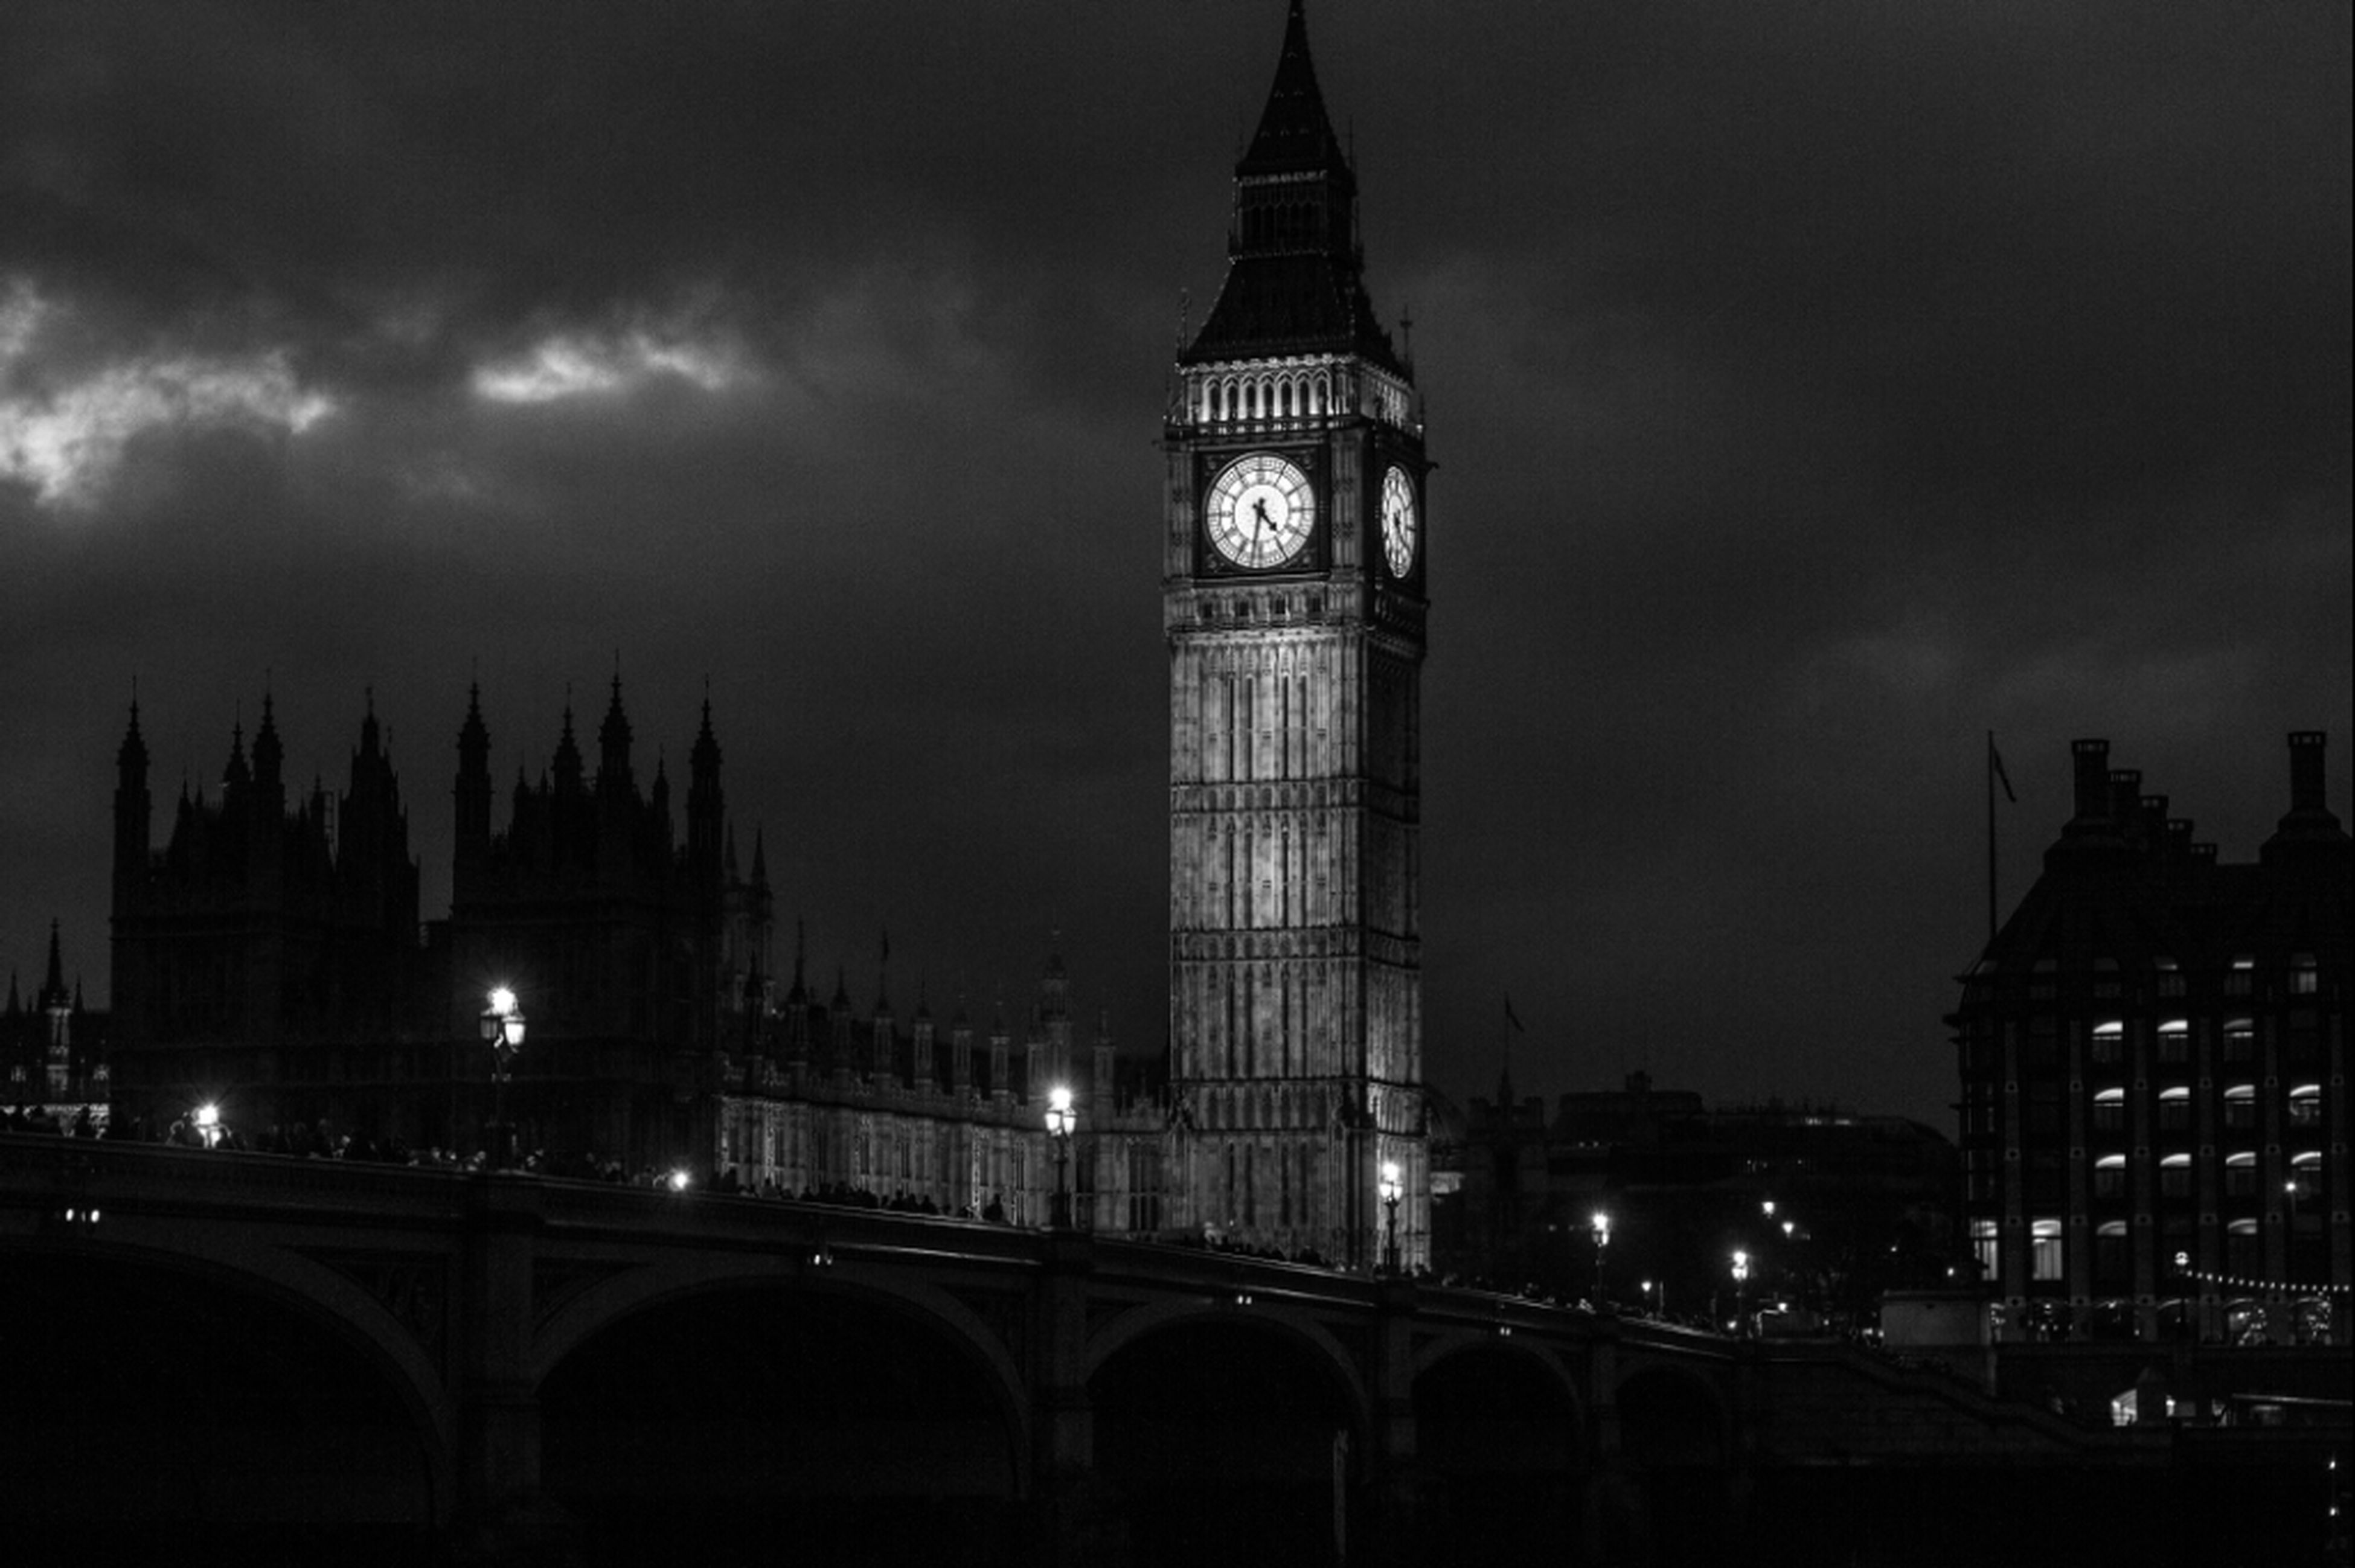 architecture, built structure, building exterior, sky, illuminated, night, travel destinations, famous place, international landmark, city, tower, tourism, cloud - sky, capital cities, travel, dusk, cloudy, tall - high, low angle view, big ben